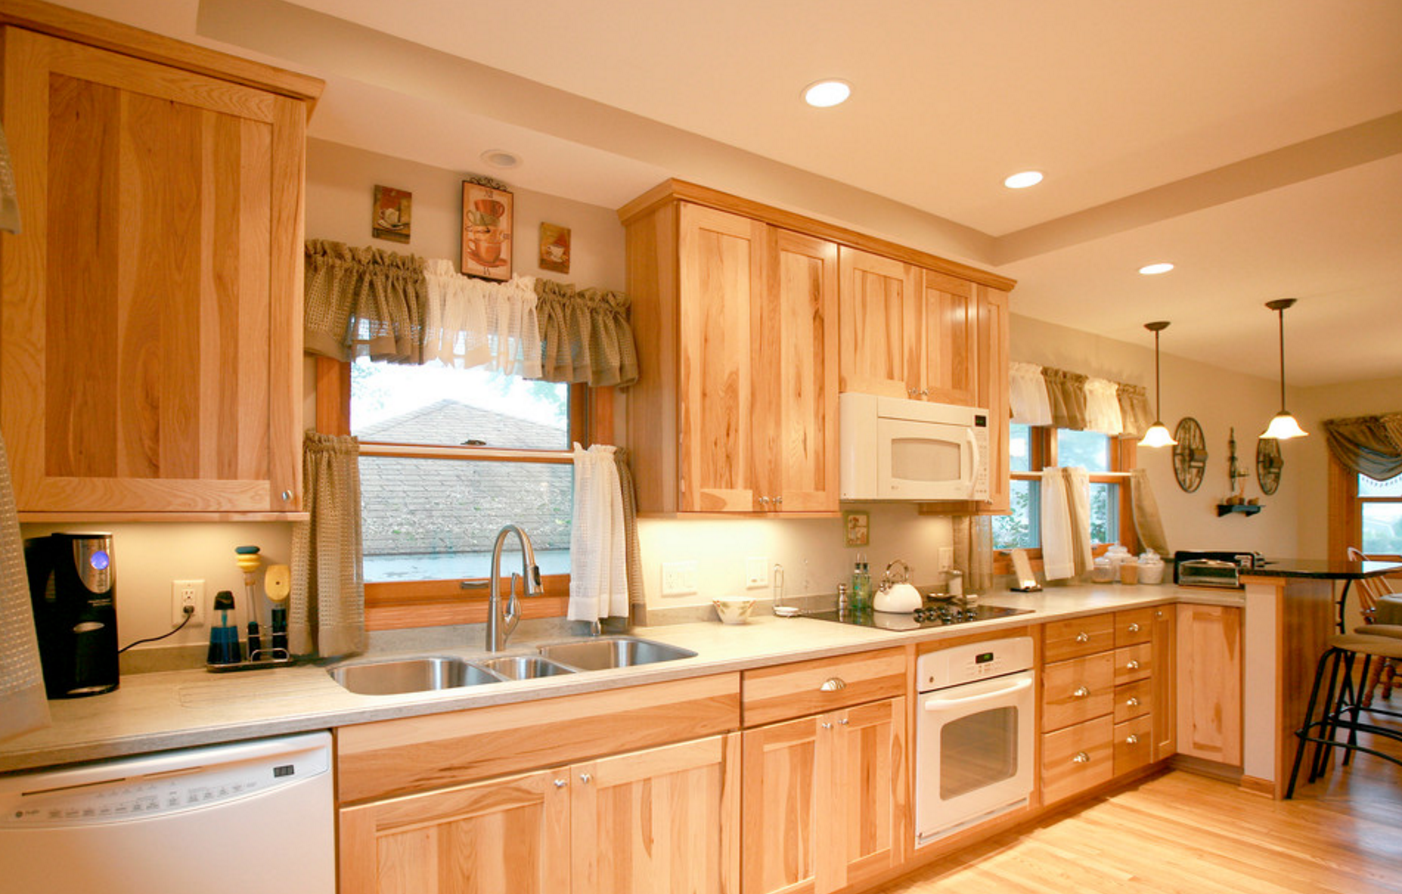 kitchen-remodel-madison-verona-middletonn-monona-wisconsin-15.png